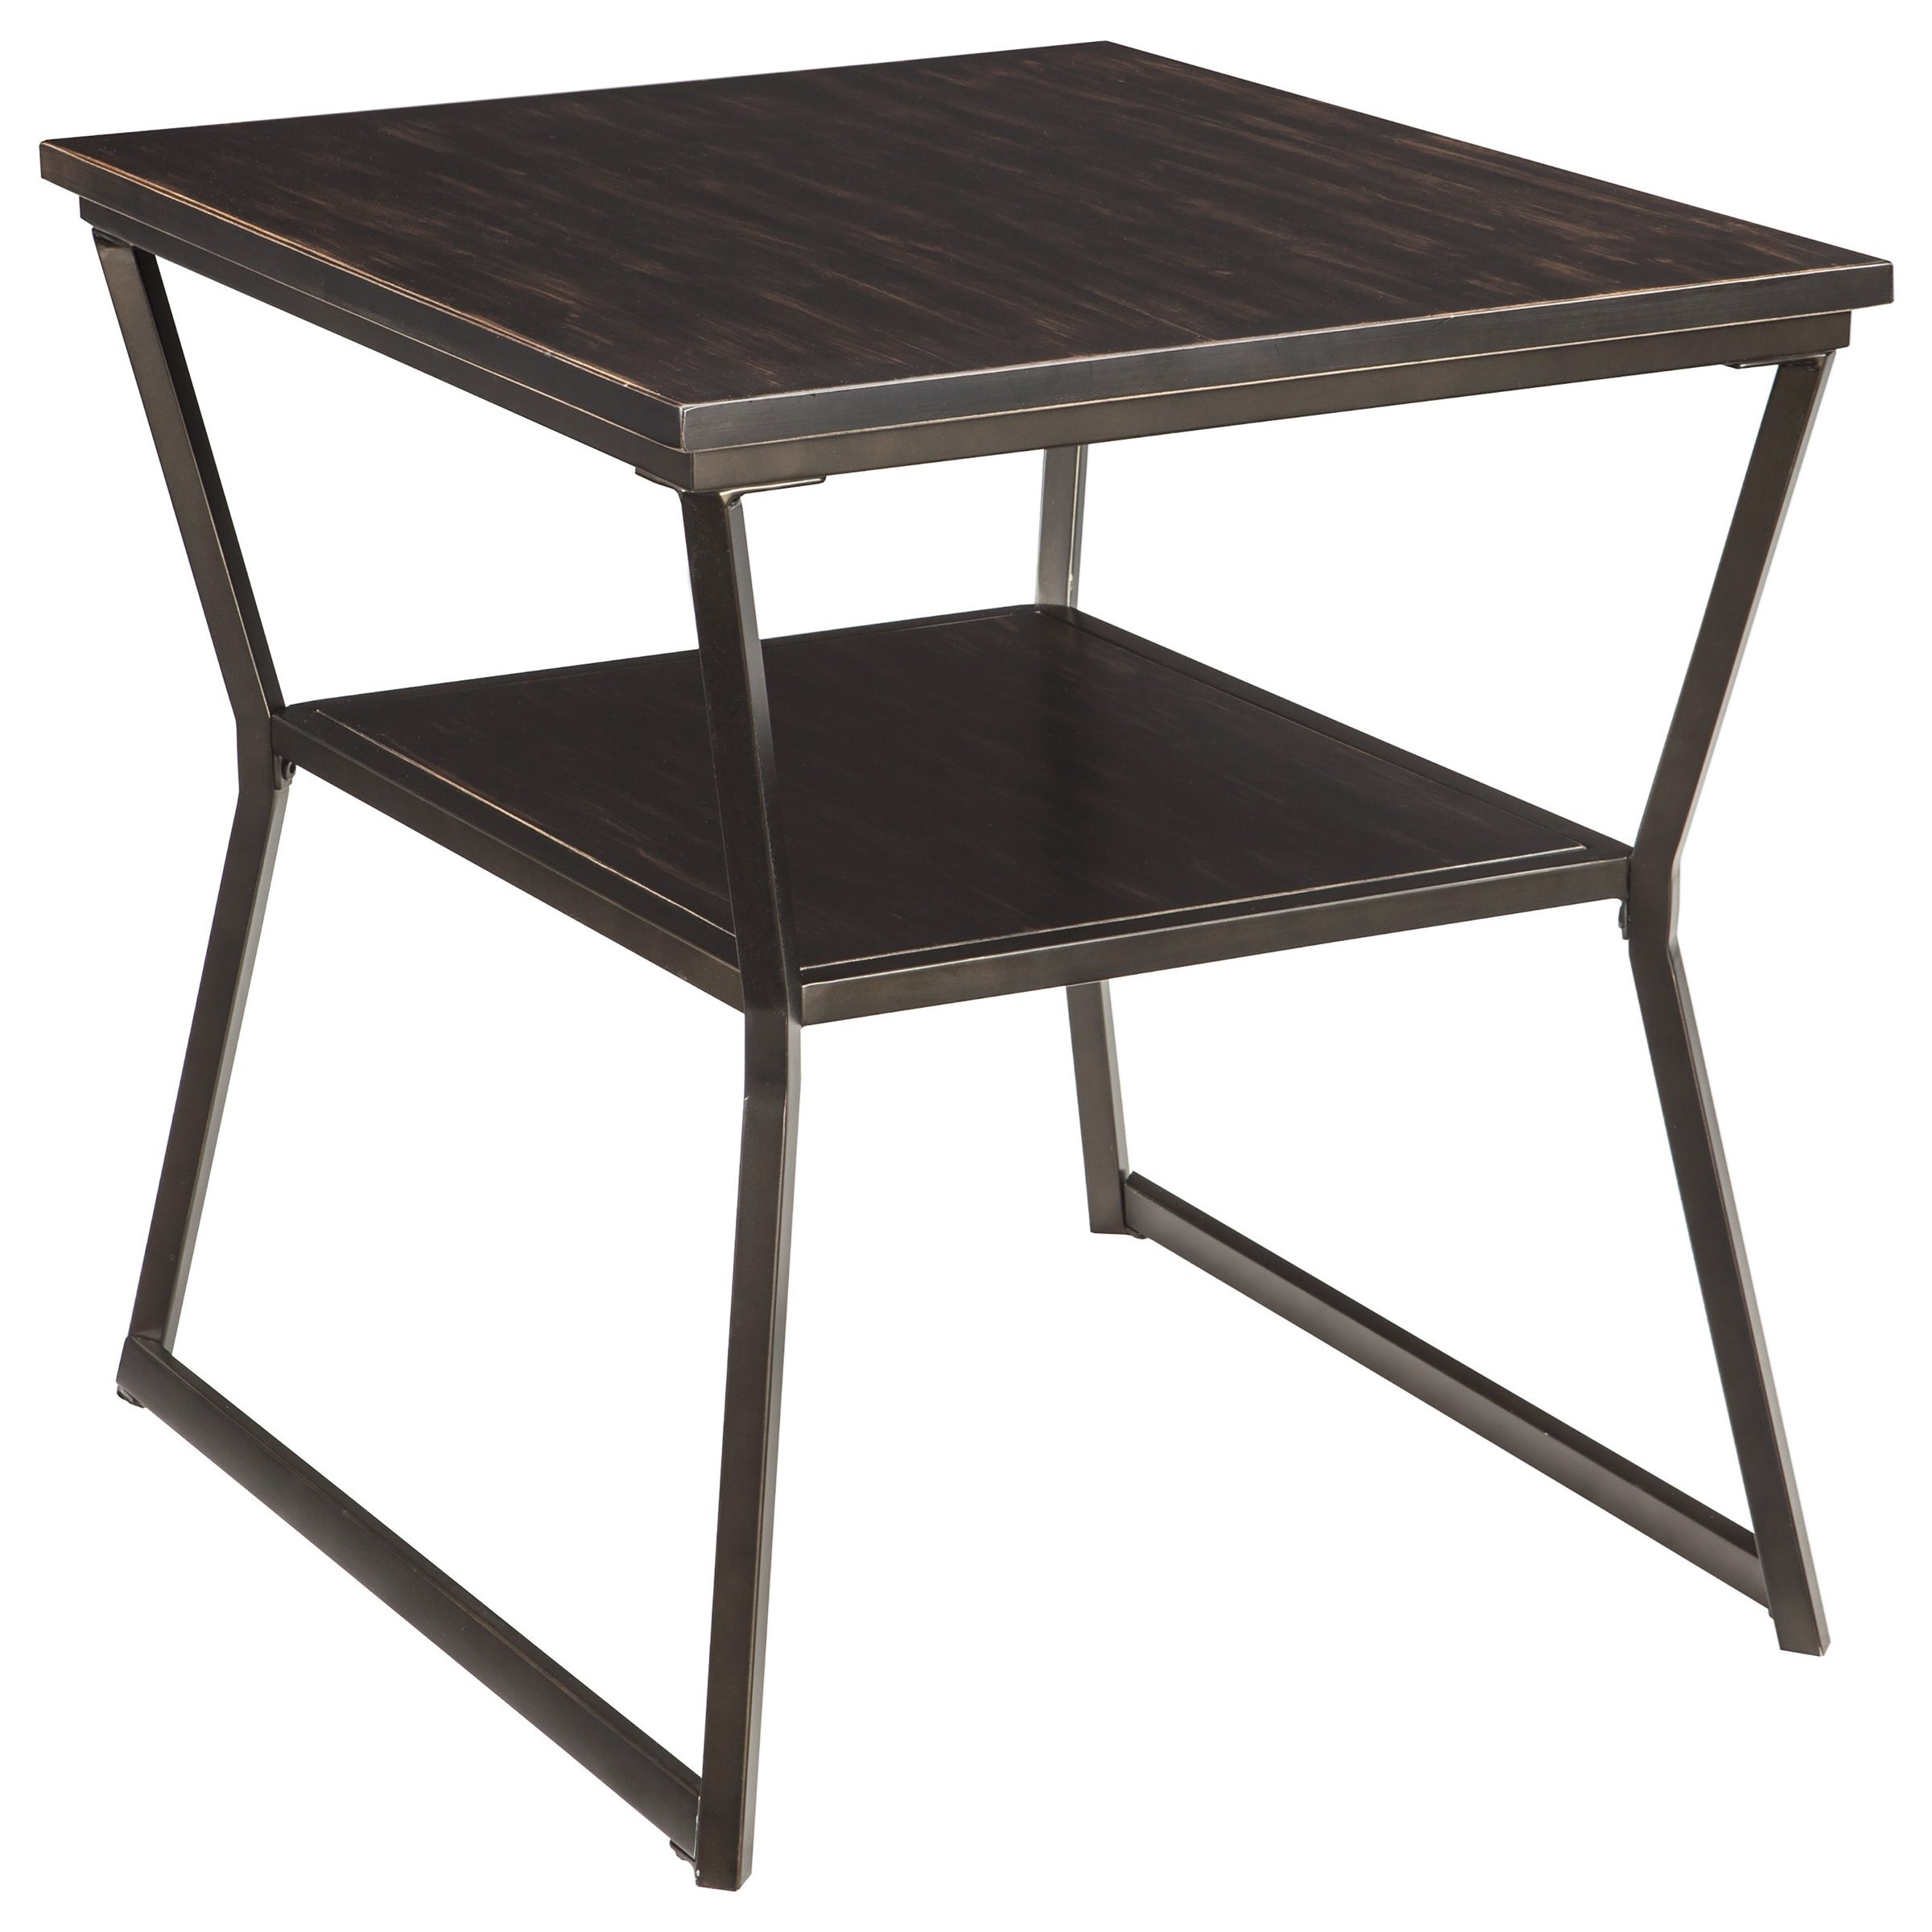 Signature Design by Ashley Vallodee Rectangular End Table  - Item Number: T436-3